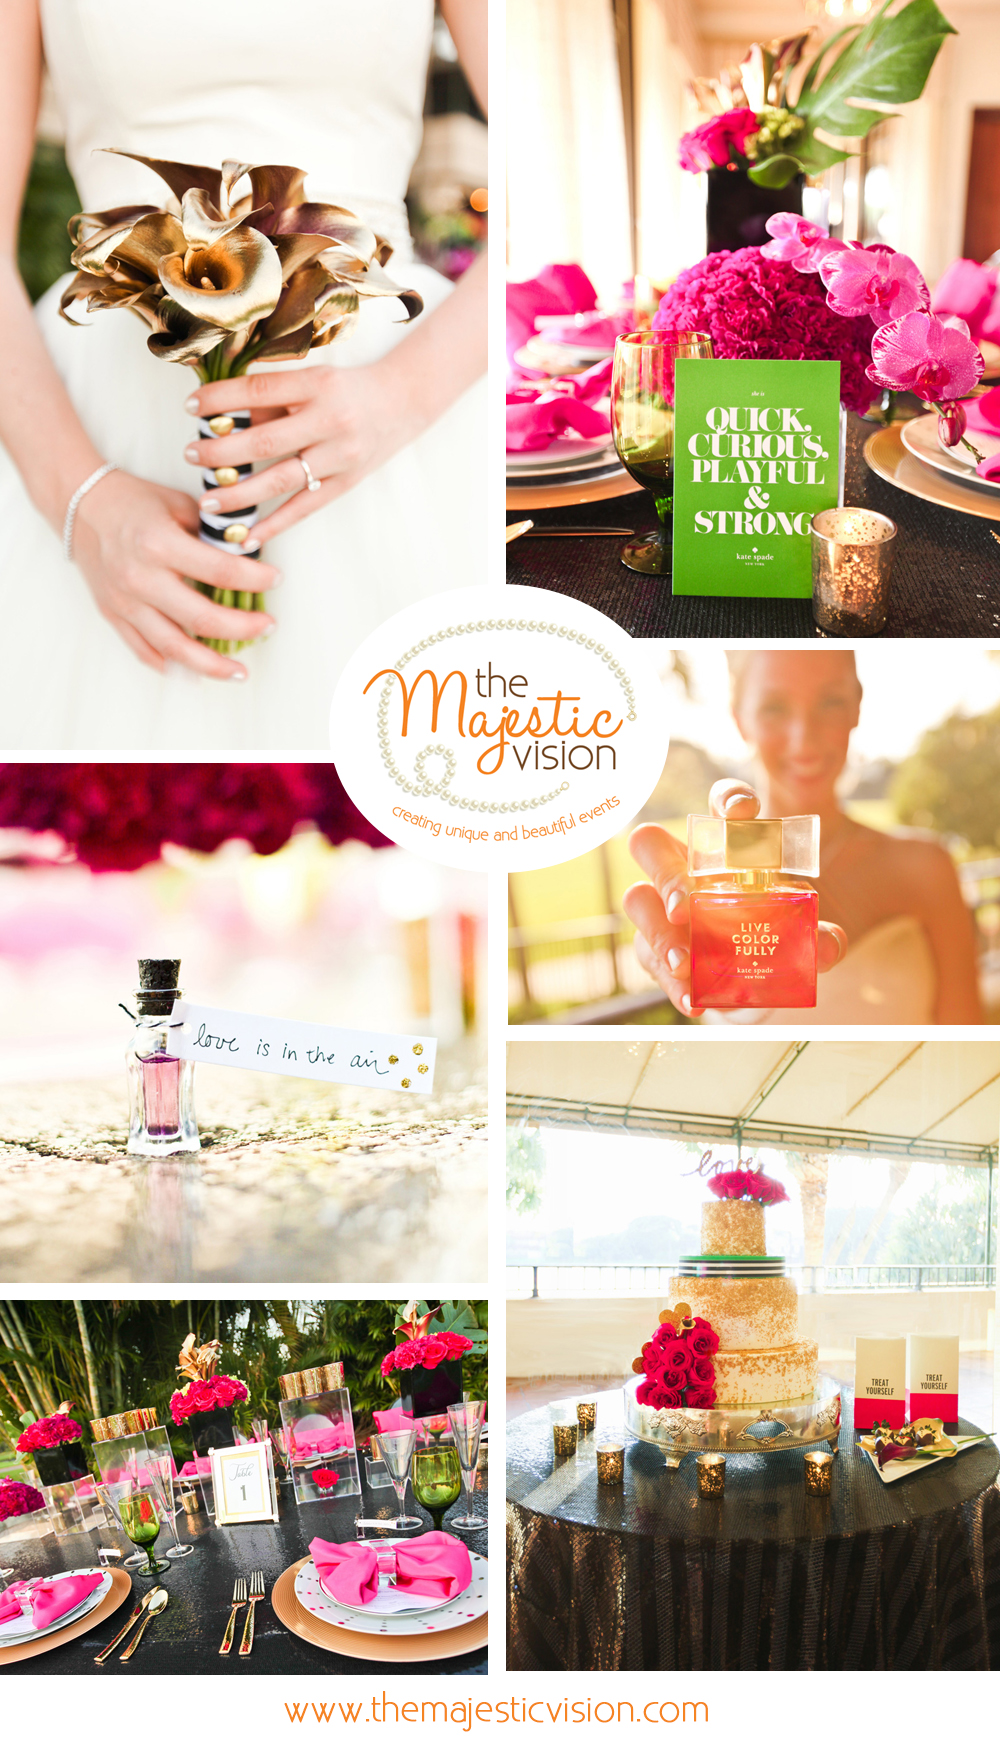 Modern and Elegant Kate Spade Inspired Pink, Gold and Black Glitter Wedding | The Majestic Vision Wedding Planning | Breakers West in Palm Beach, FL | www.themajesticvision.com | Krystal Zaskey Photography